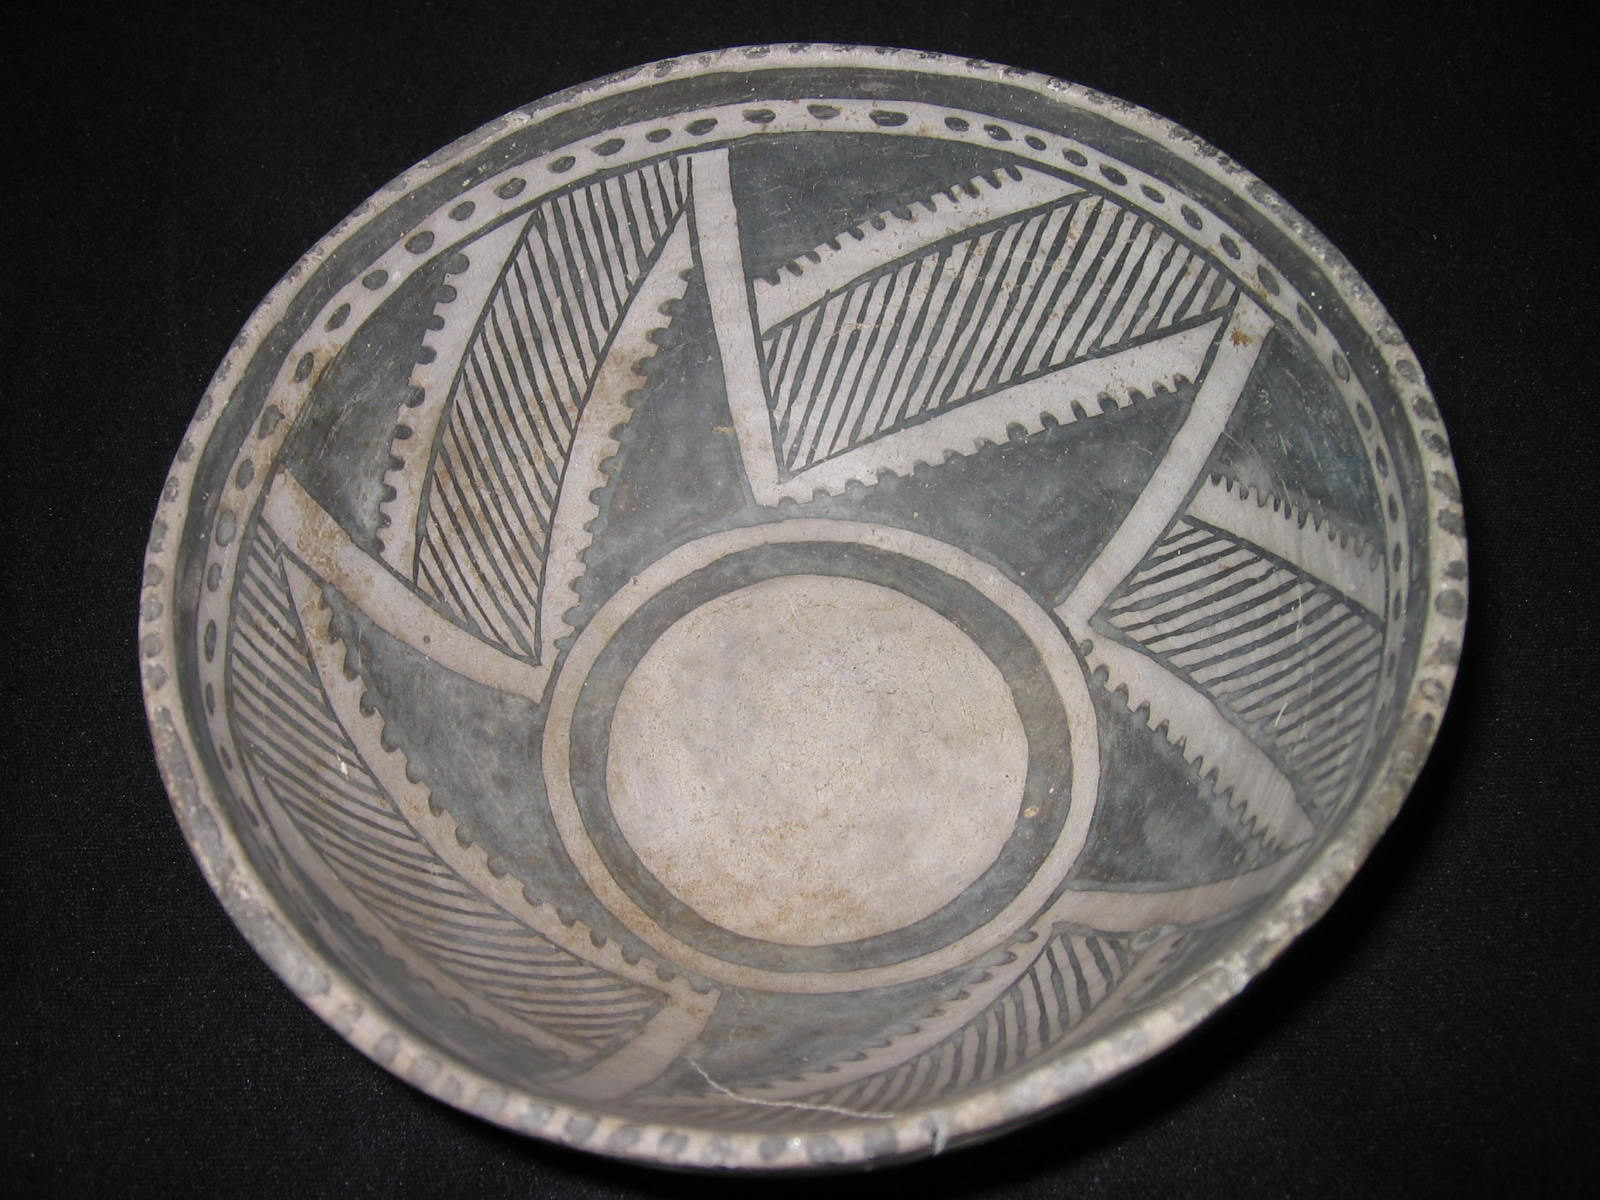 Anasazi Bowl from Steve Lekson